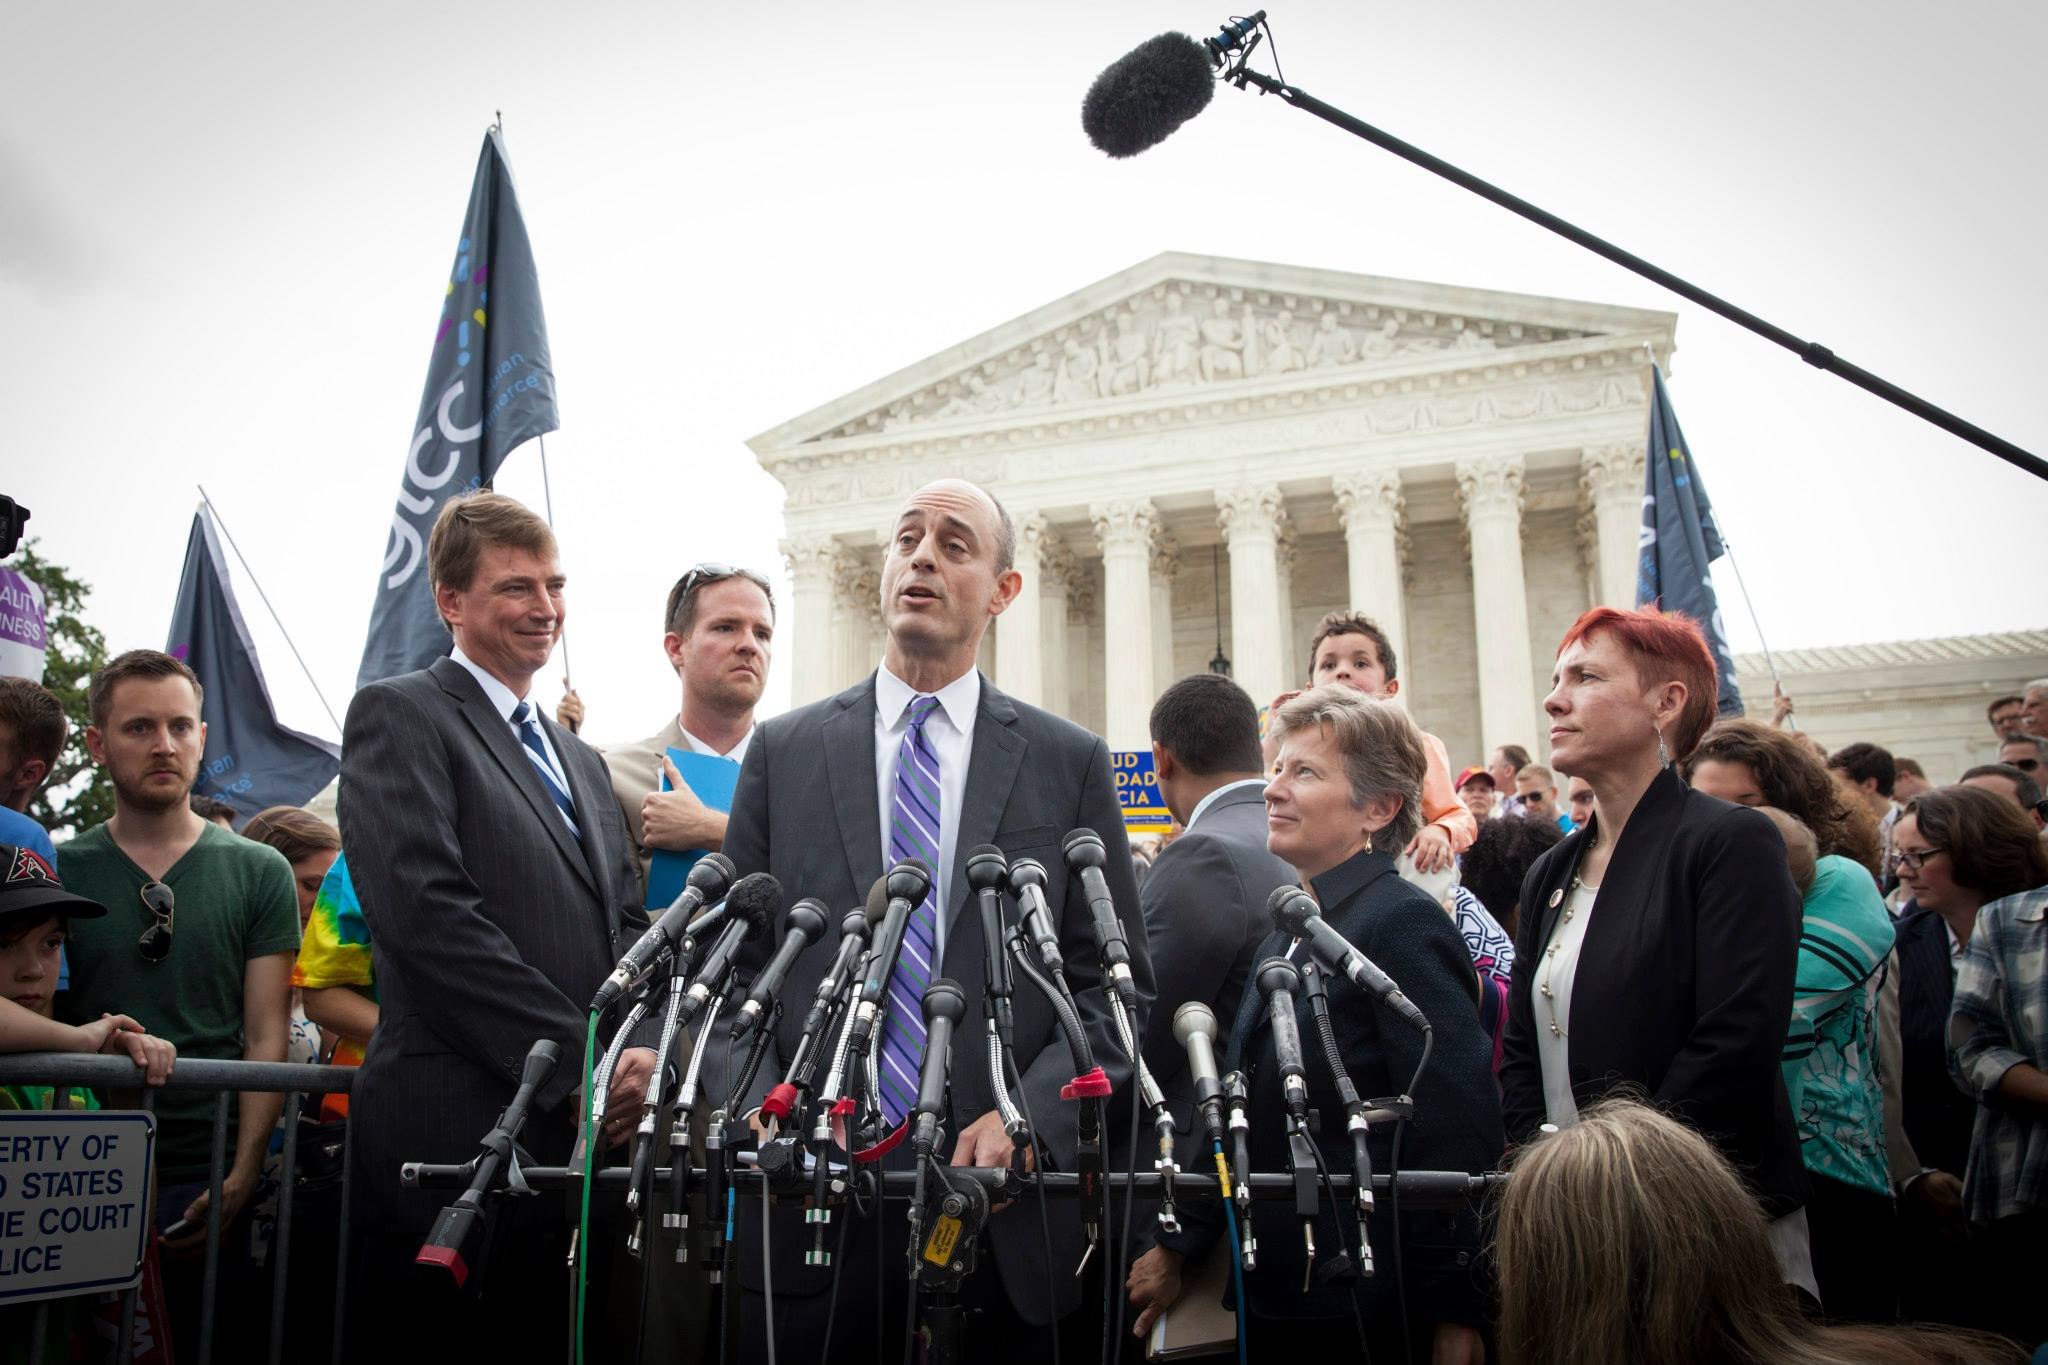 James Esseks ACLU on how to win the battle for LGBT rights